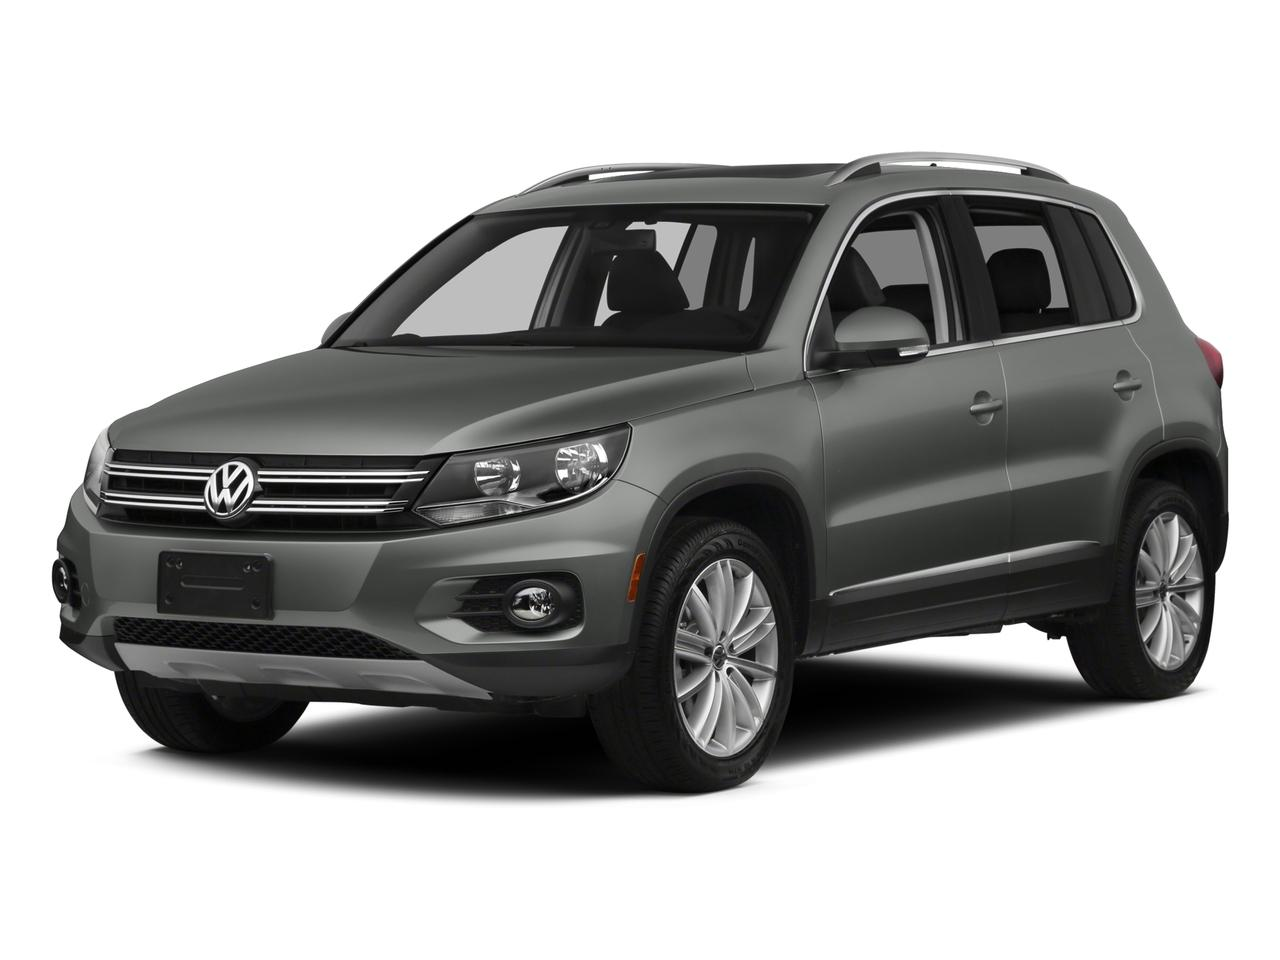 2015 Volkswagen Tiguan Vehicle Photo in Moon Township, PA 15108